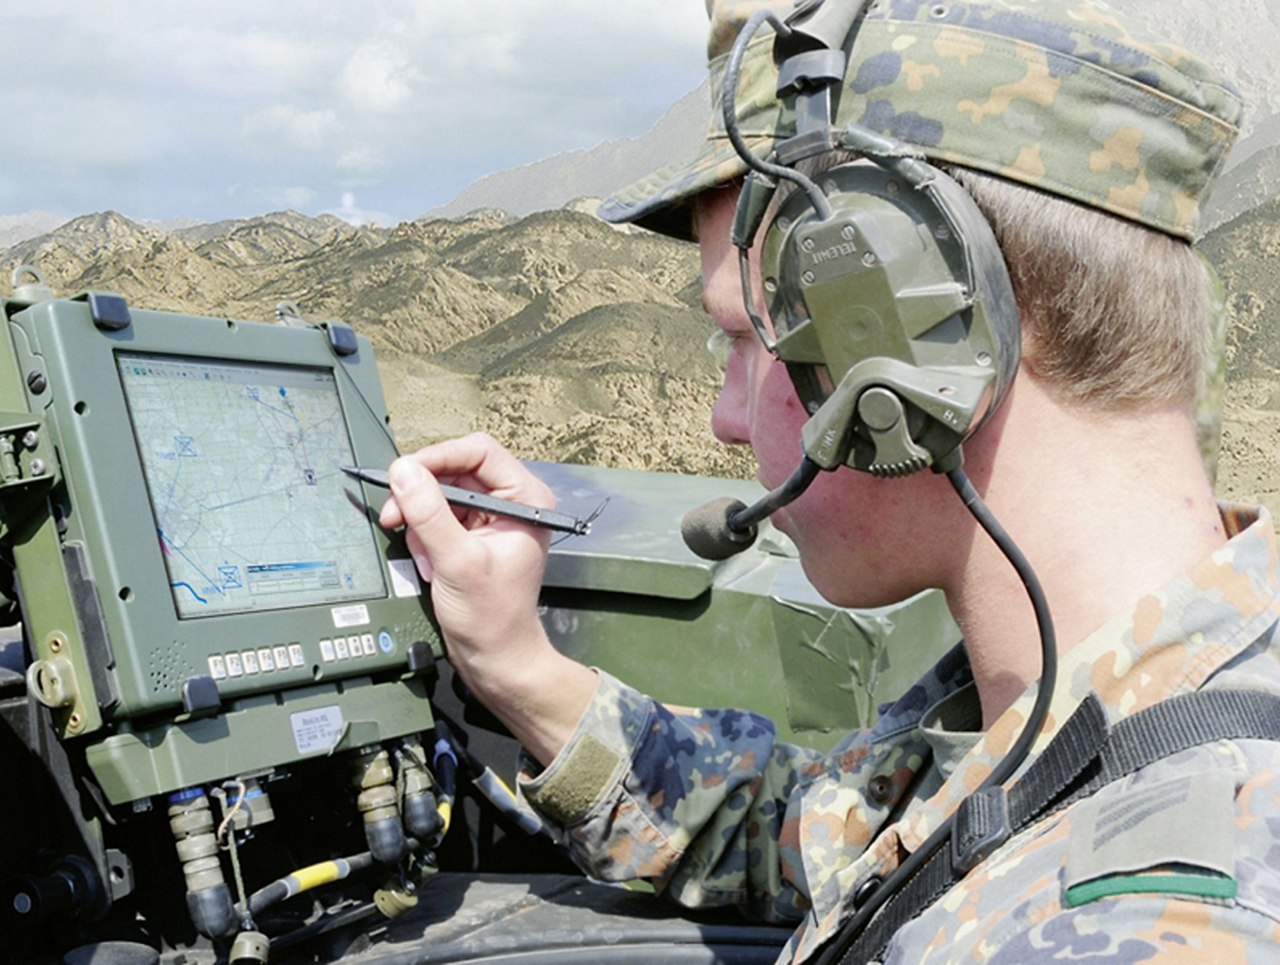 A member of the military uses a tablet device and stylus for mission planning.